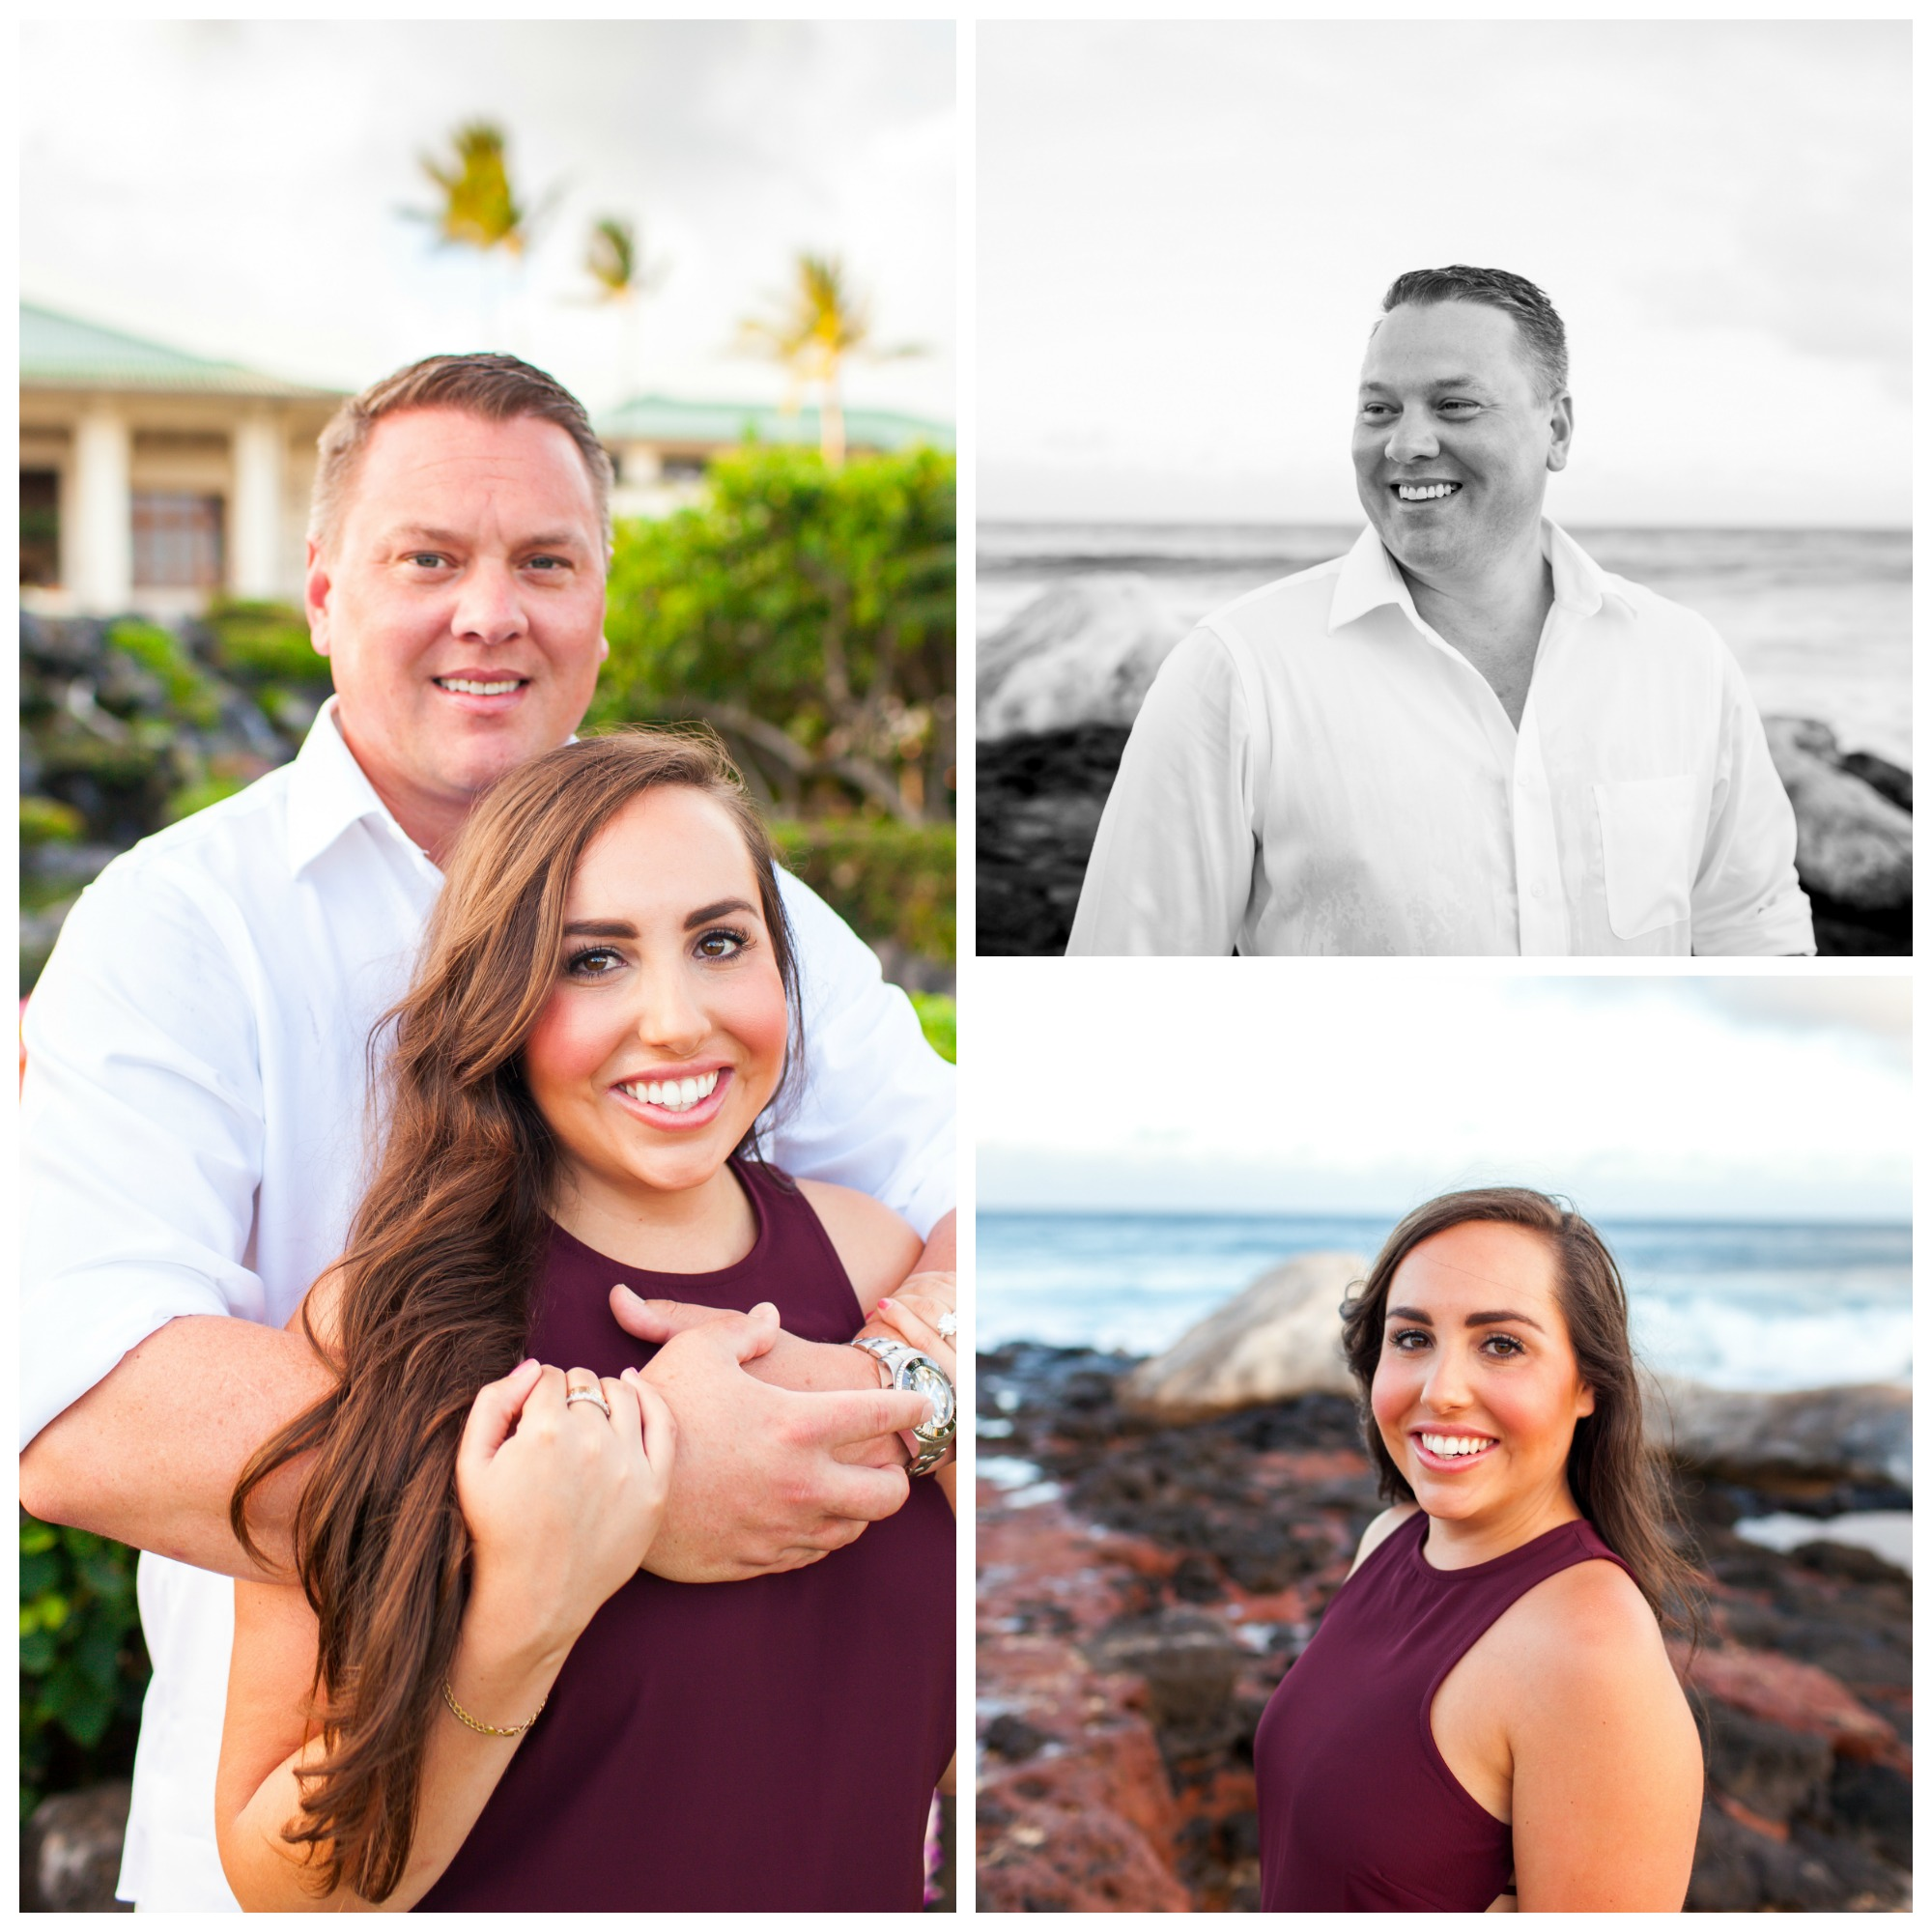 Pacific Dream Photography - Hawaii Photographer - Portrait Photographer - Engagement Photographer - Maui Photographer